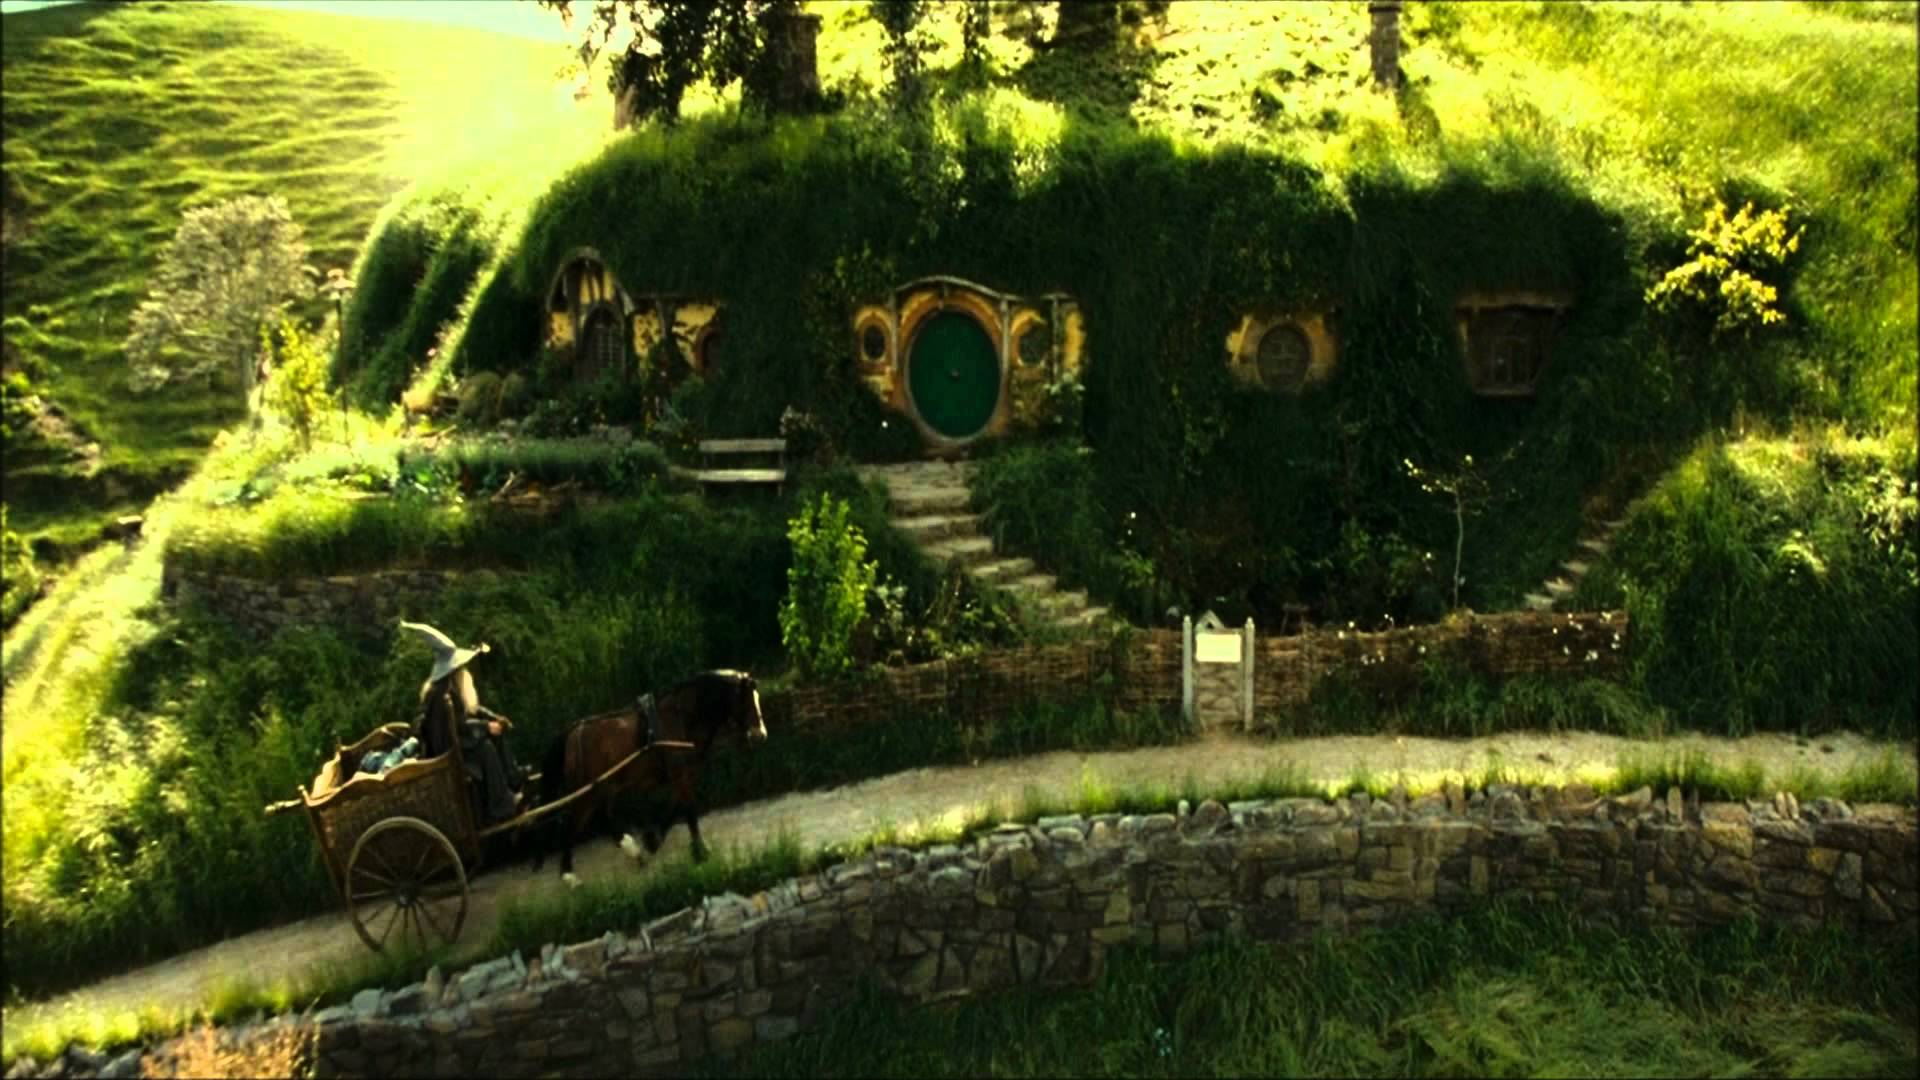 Displaying 16 Images For   The Shire Lord Of The Rings Movie 1920x1080